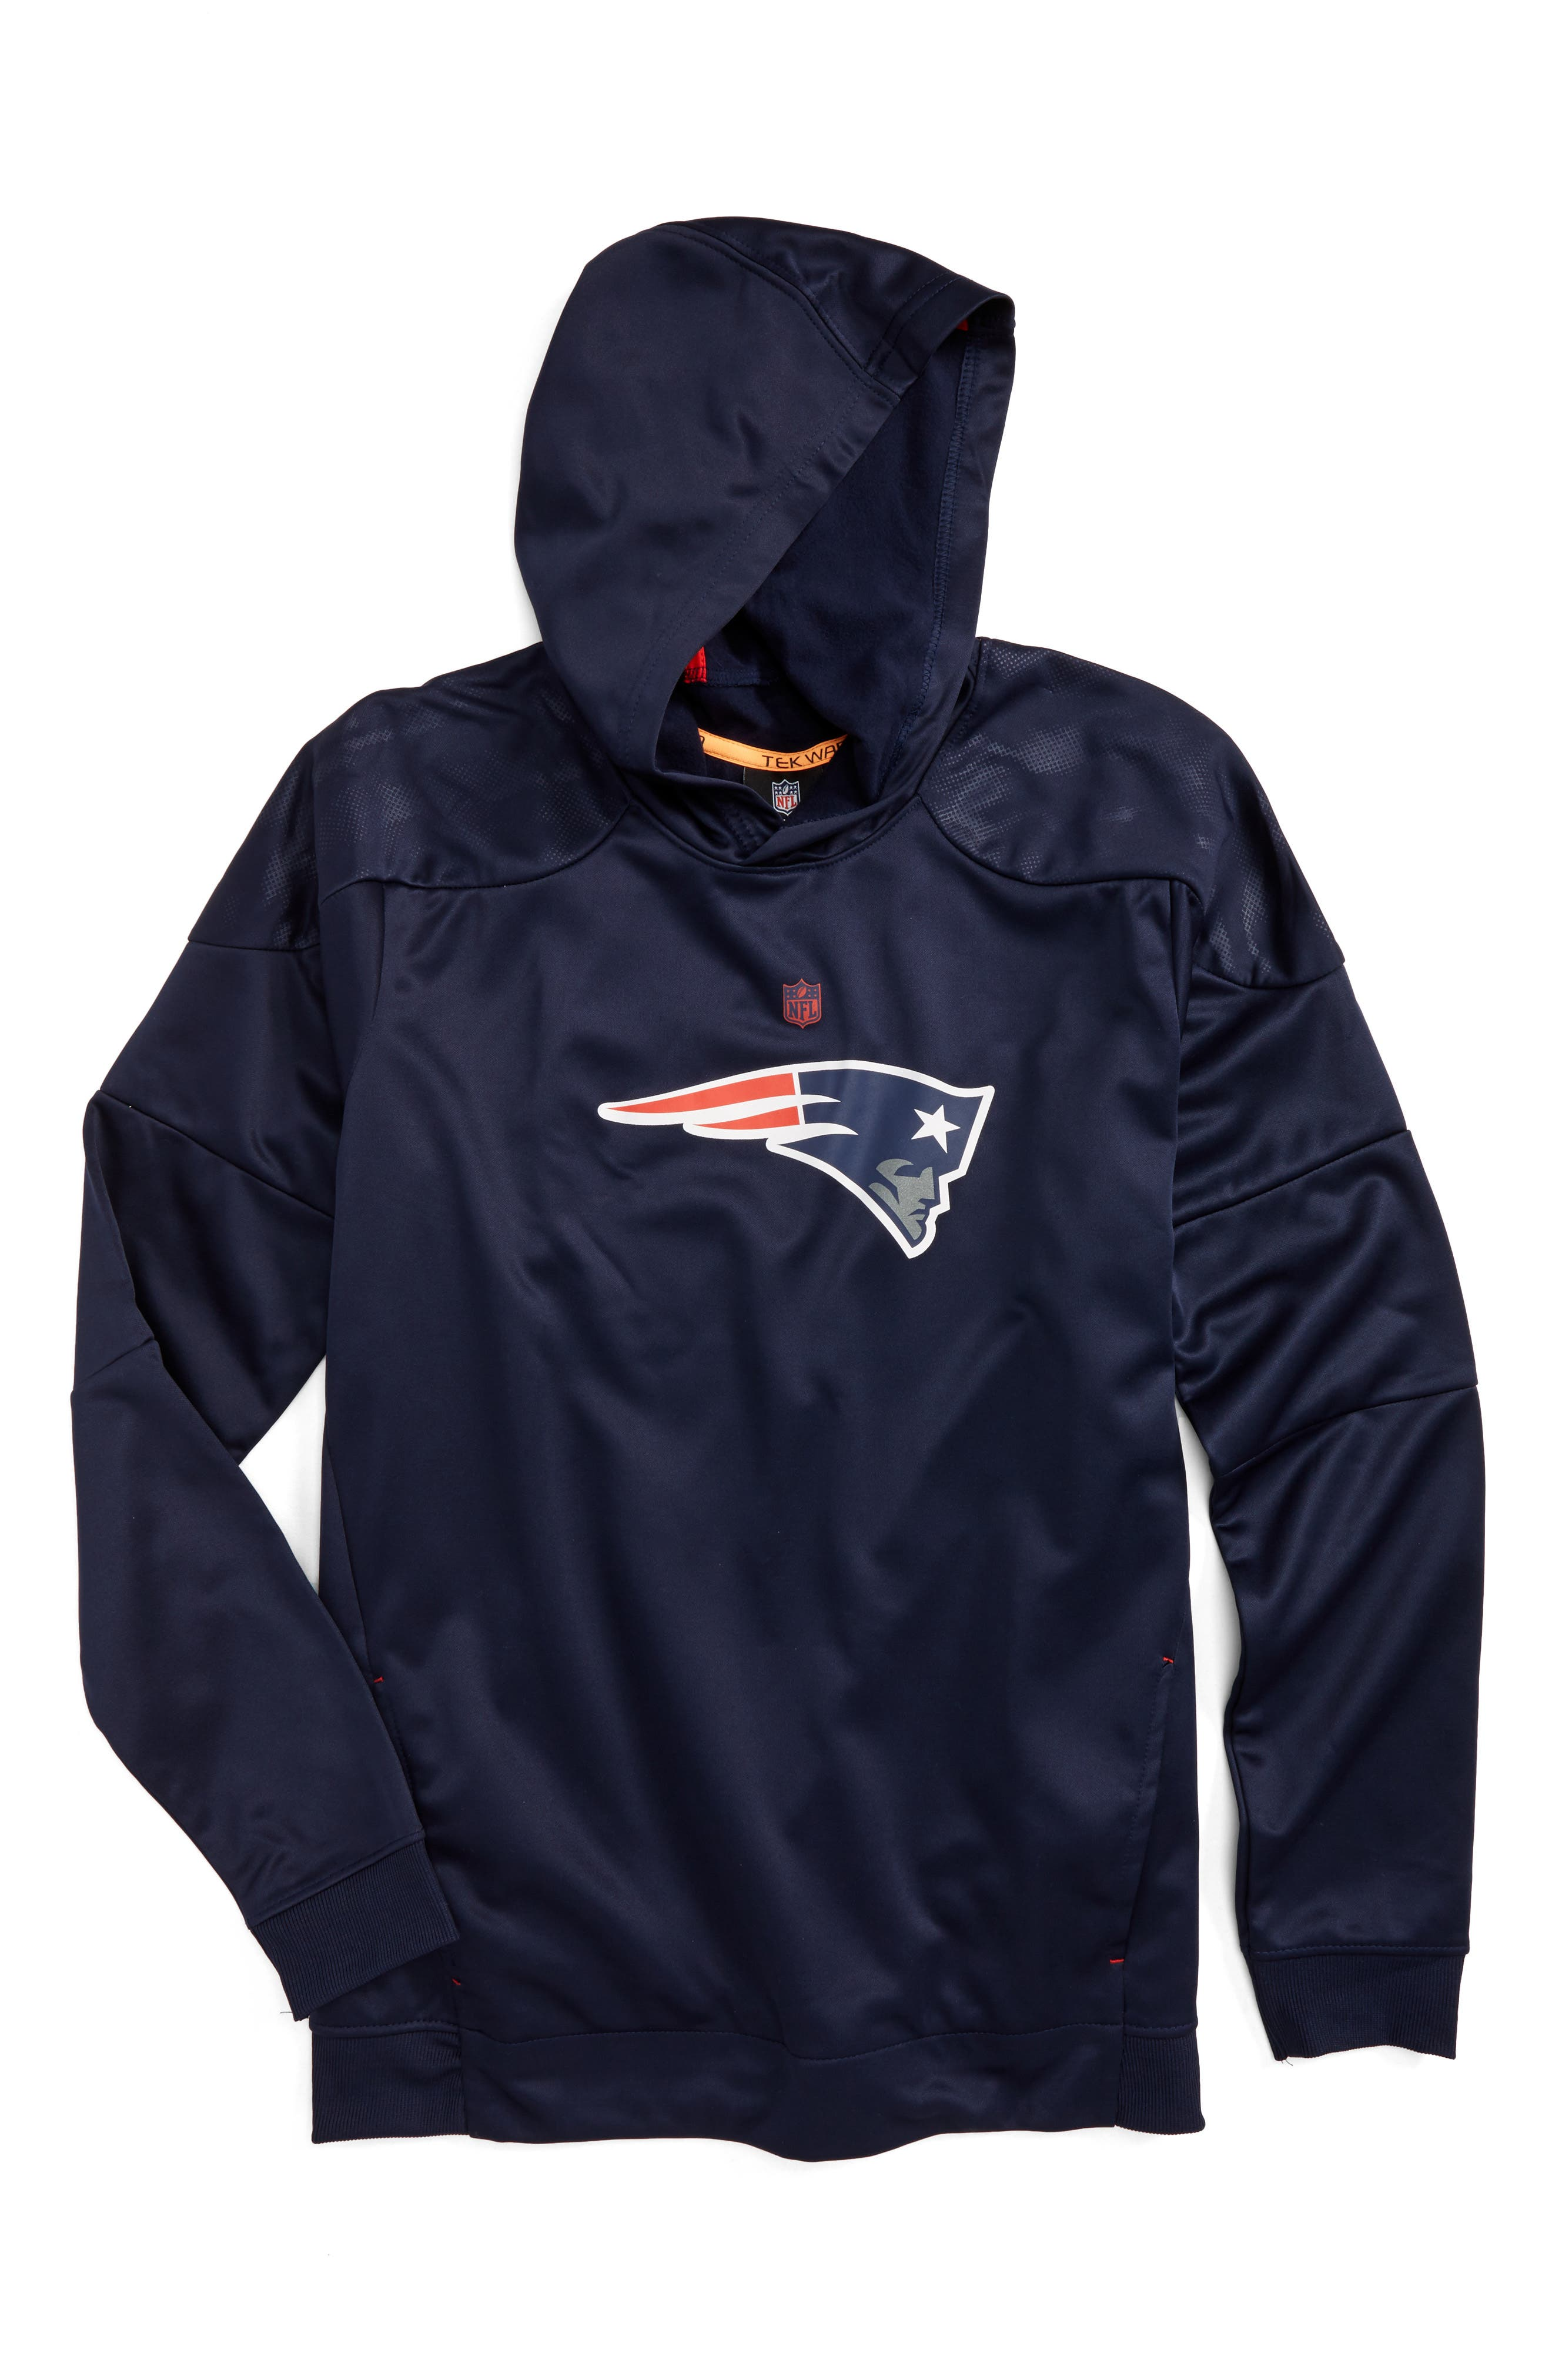 NFL New England Patriots Hoodie,                             Main thumbnail 1, color,                             Navy